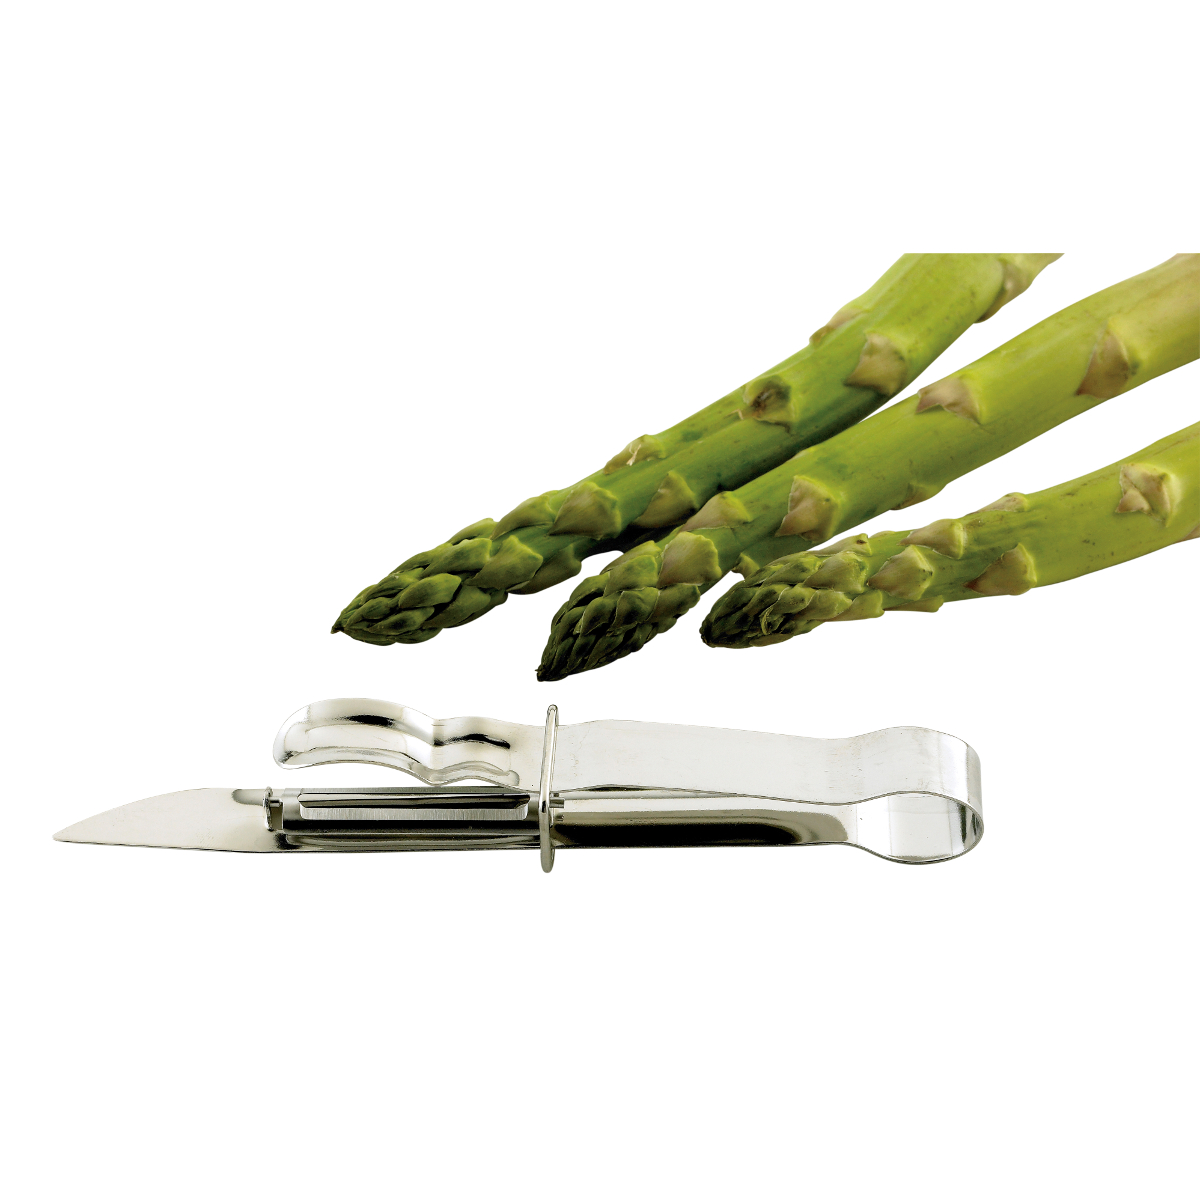 Stainless Steel Asparagus Peeler Chef Tool